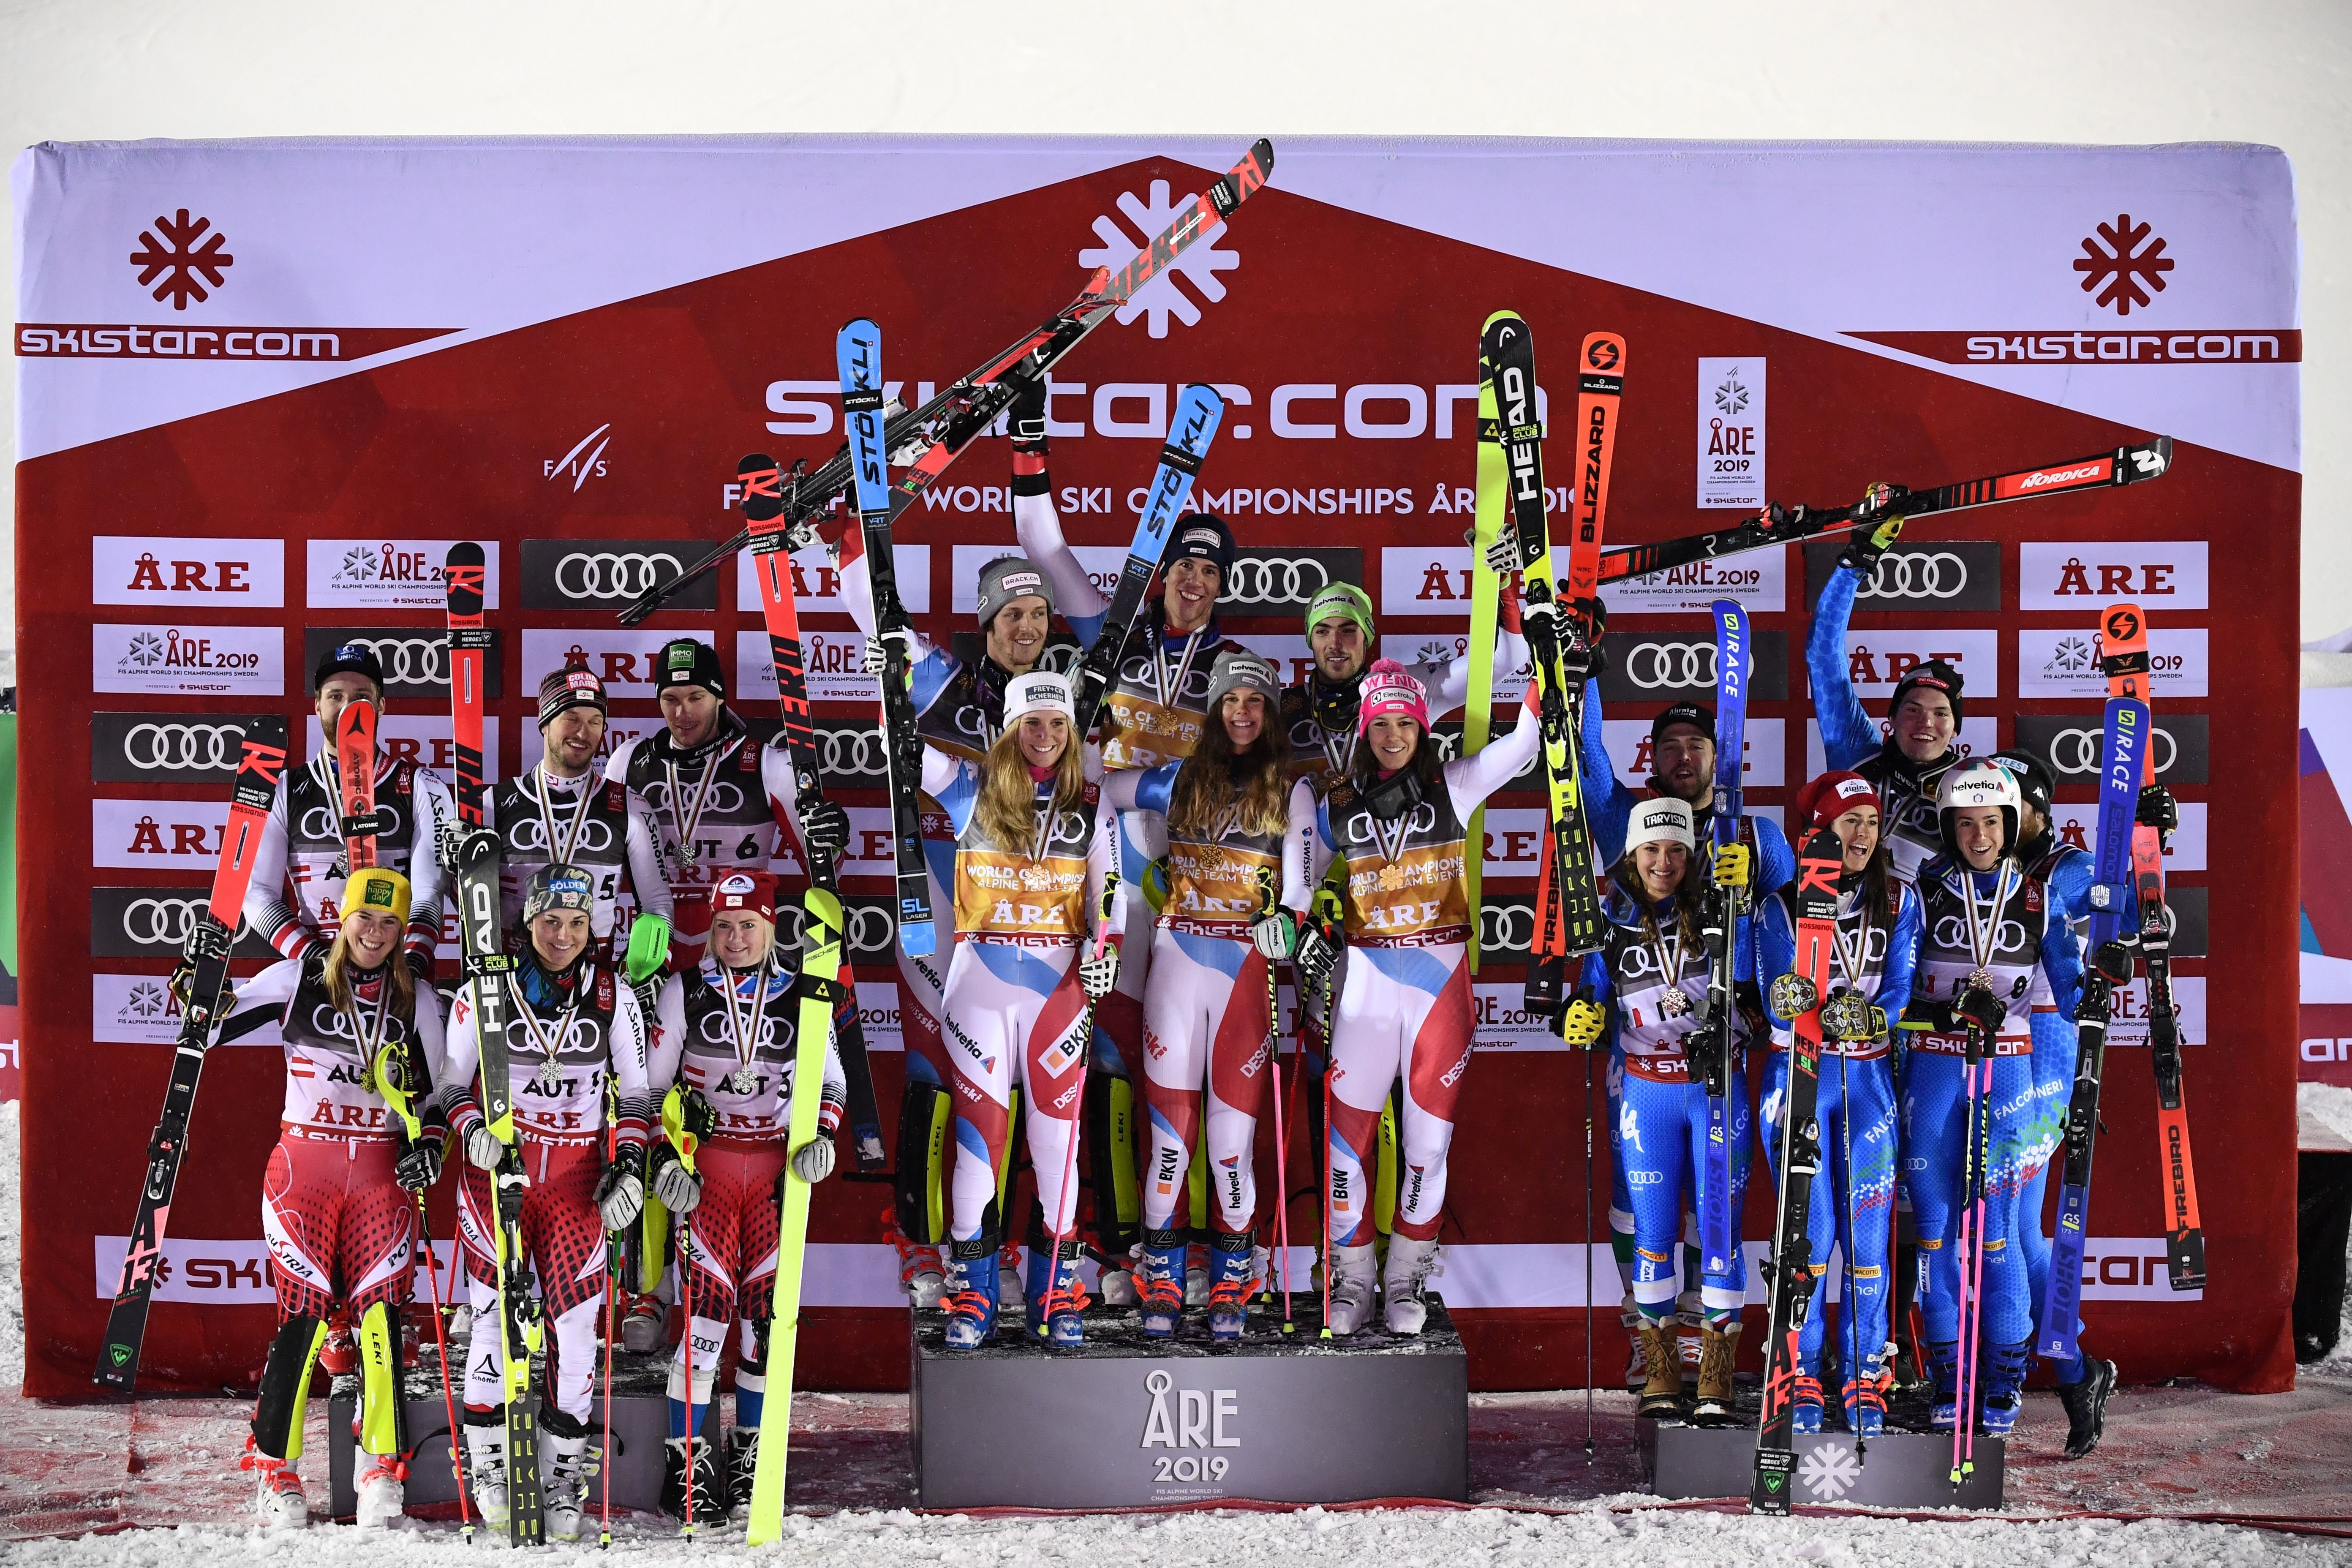 Winner Swiss team (C), second-placed Autrian team and third-placed Italian team celebrate after the Alpine team event at the 2019 FIS Alpine Ski World Championships at the National Arena in Are, Sweden, on February 12, 2019.